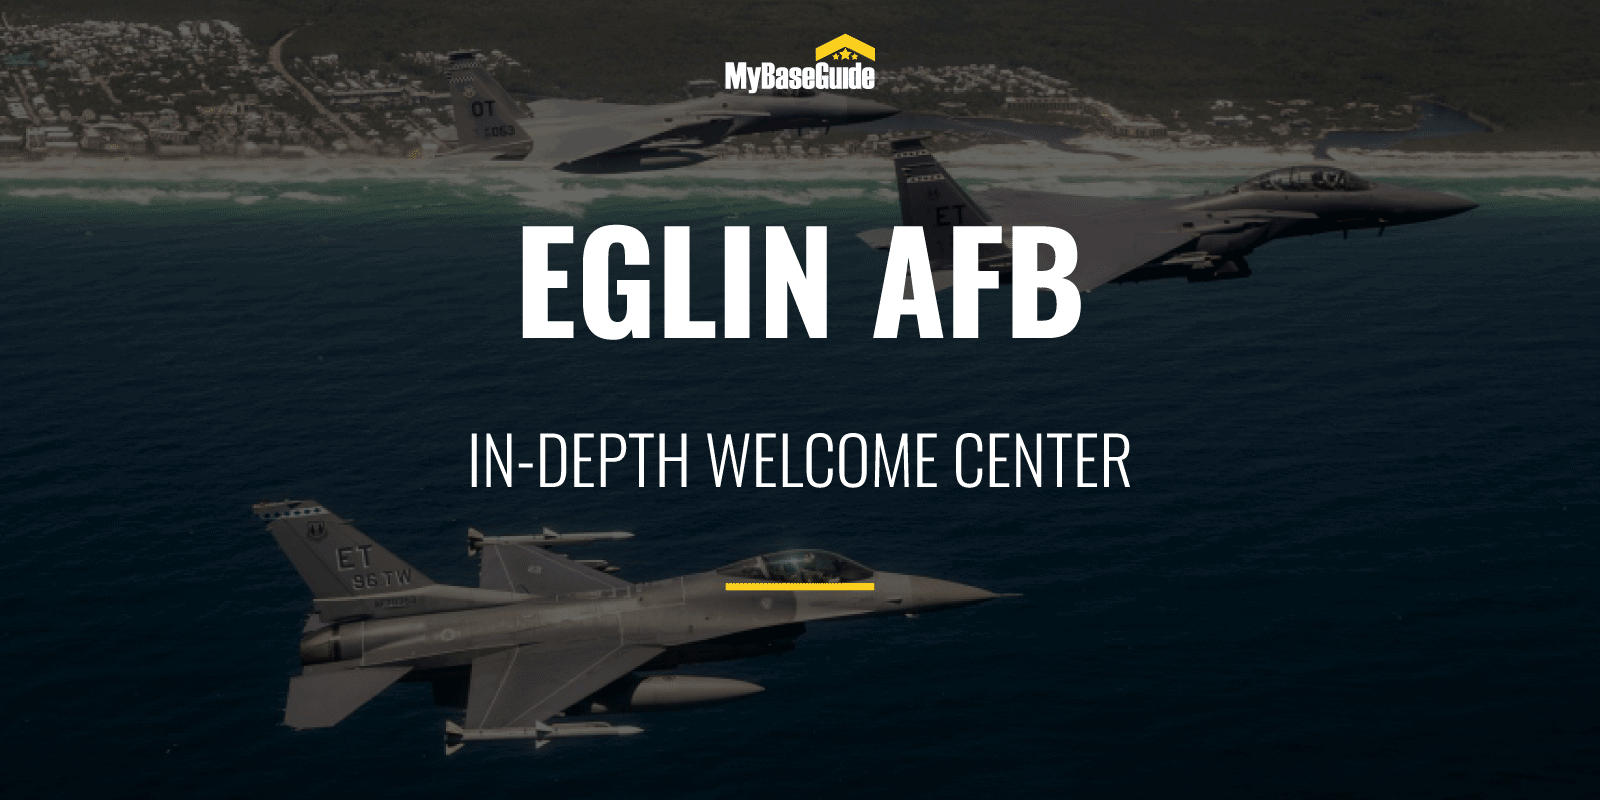 Eglin AFB: In-Depth Welcome Center